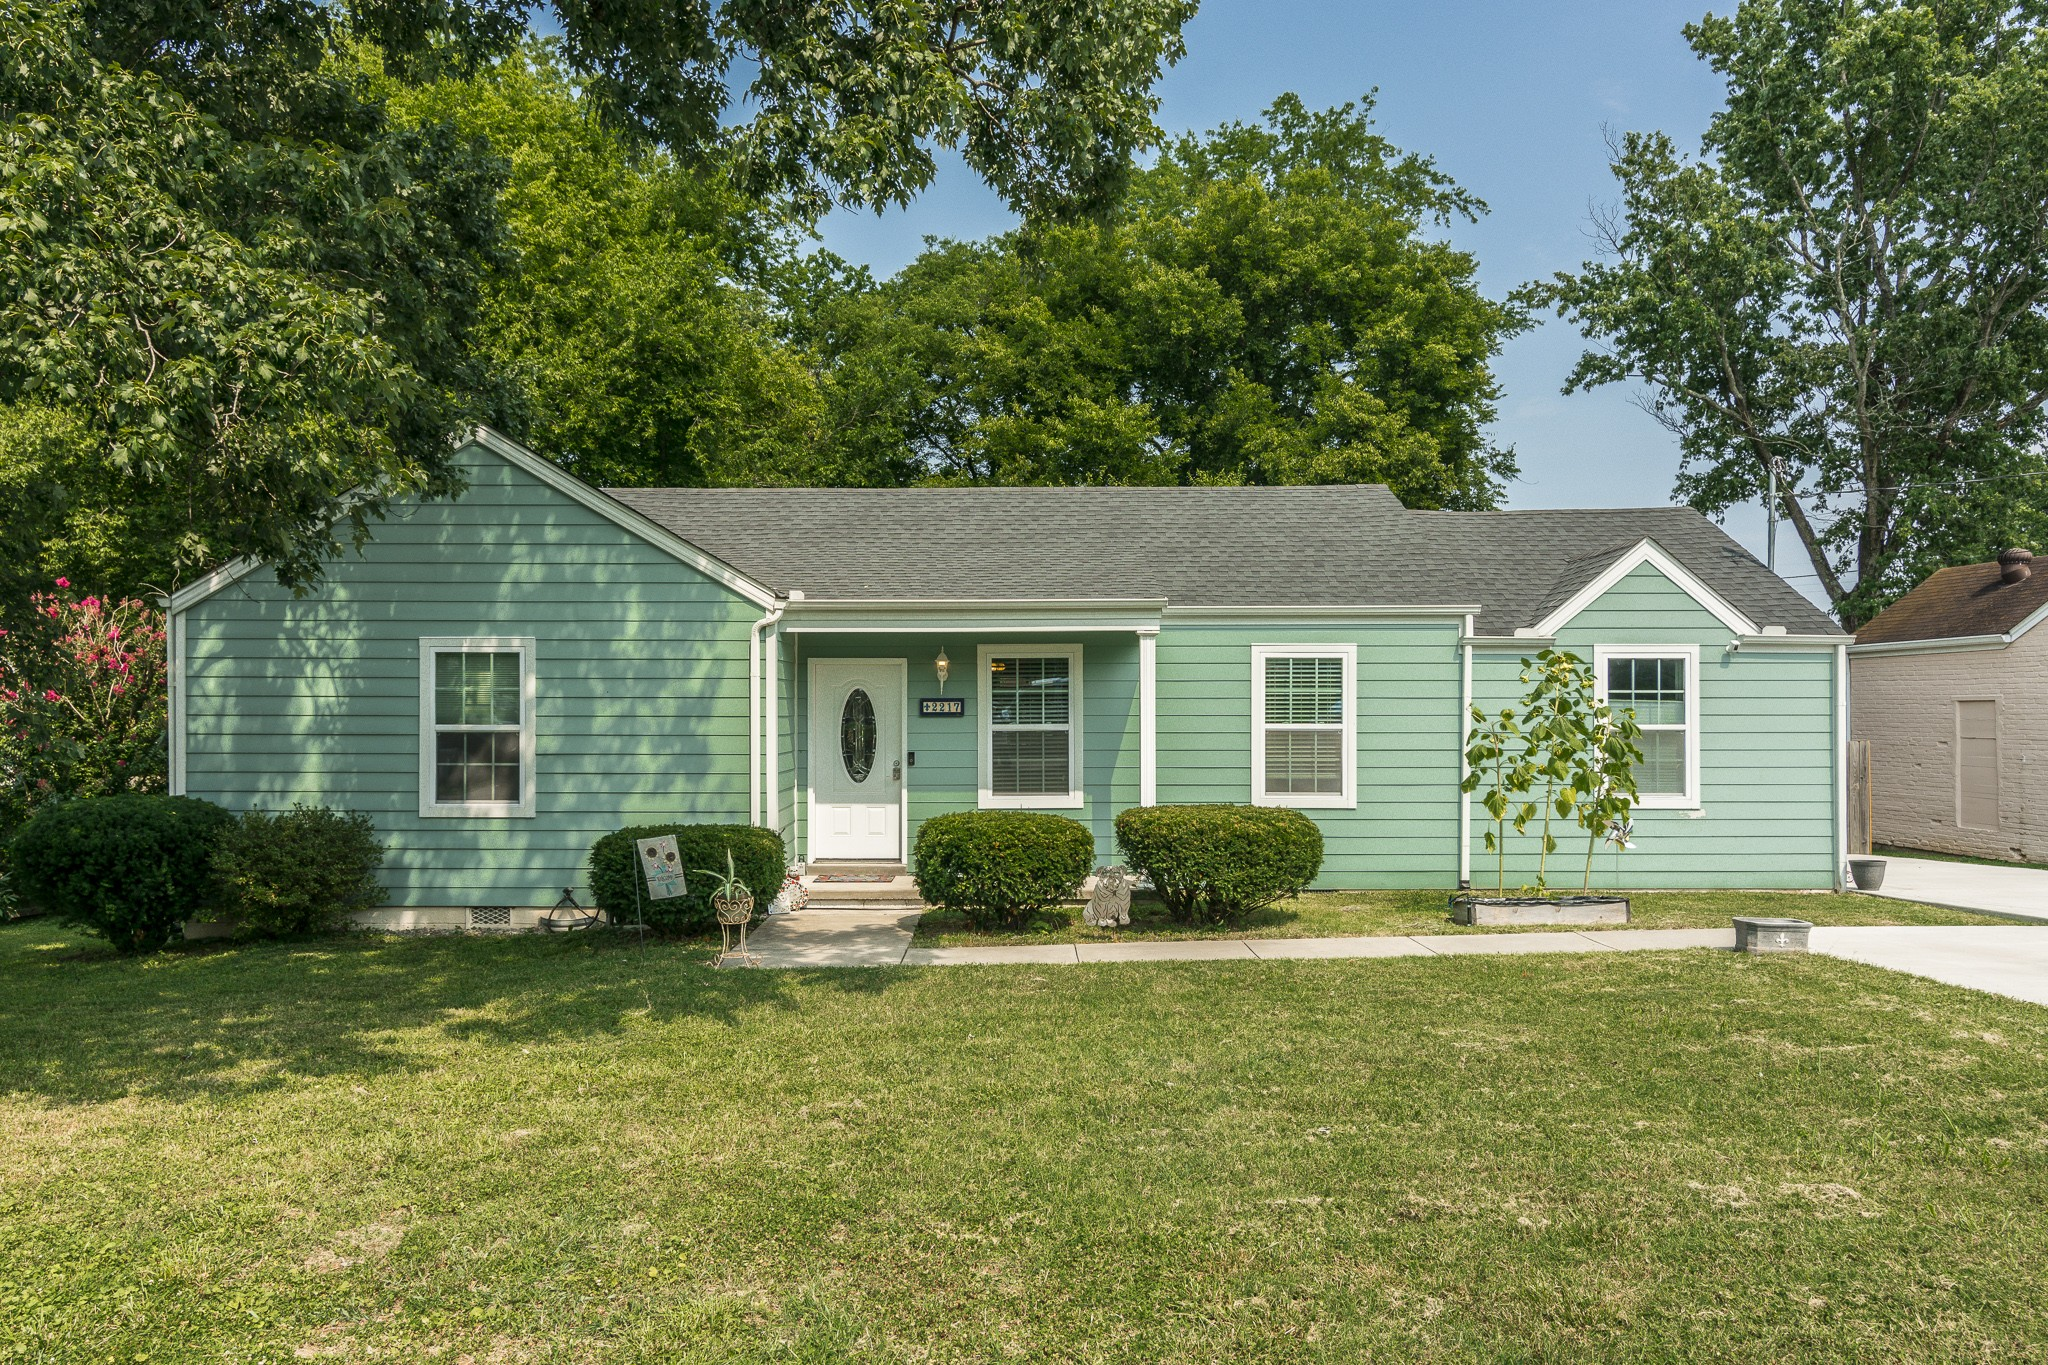 Open House, Wednesday- August 4th from 4-6 p.m. Renovated 1950's single level w/ 3 BR's & 2 BA's! Split bedroom floor plan, Owners suite has a walk-in closet, full bath with double vanities & tiled flooring! Spacious living room with hardwoods, Kitchen w/ granite, SS appliances and open dining area! Step outside to a nice deck and a fully fenced in backyard! Enjoy this quiet pocket of East Nashville & within a short distance to Riverside Village & 5 Points! Roof/HVAC/Electrical/Plumbing- 4 yrs!